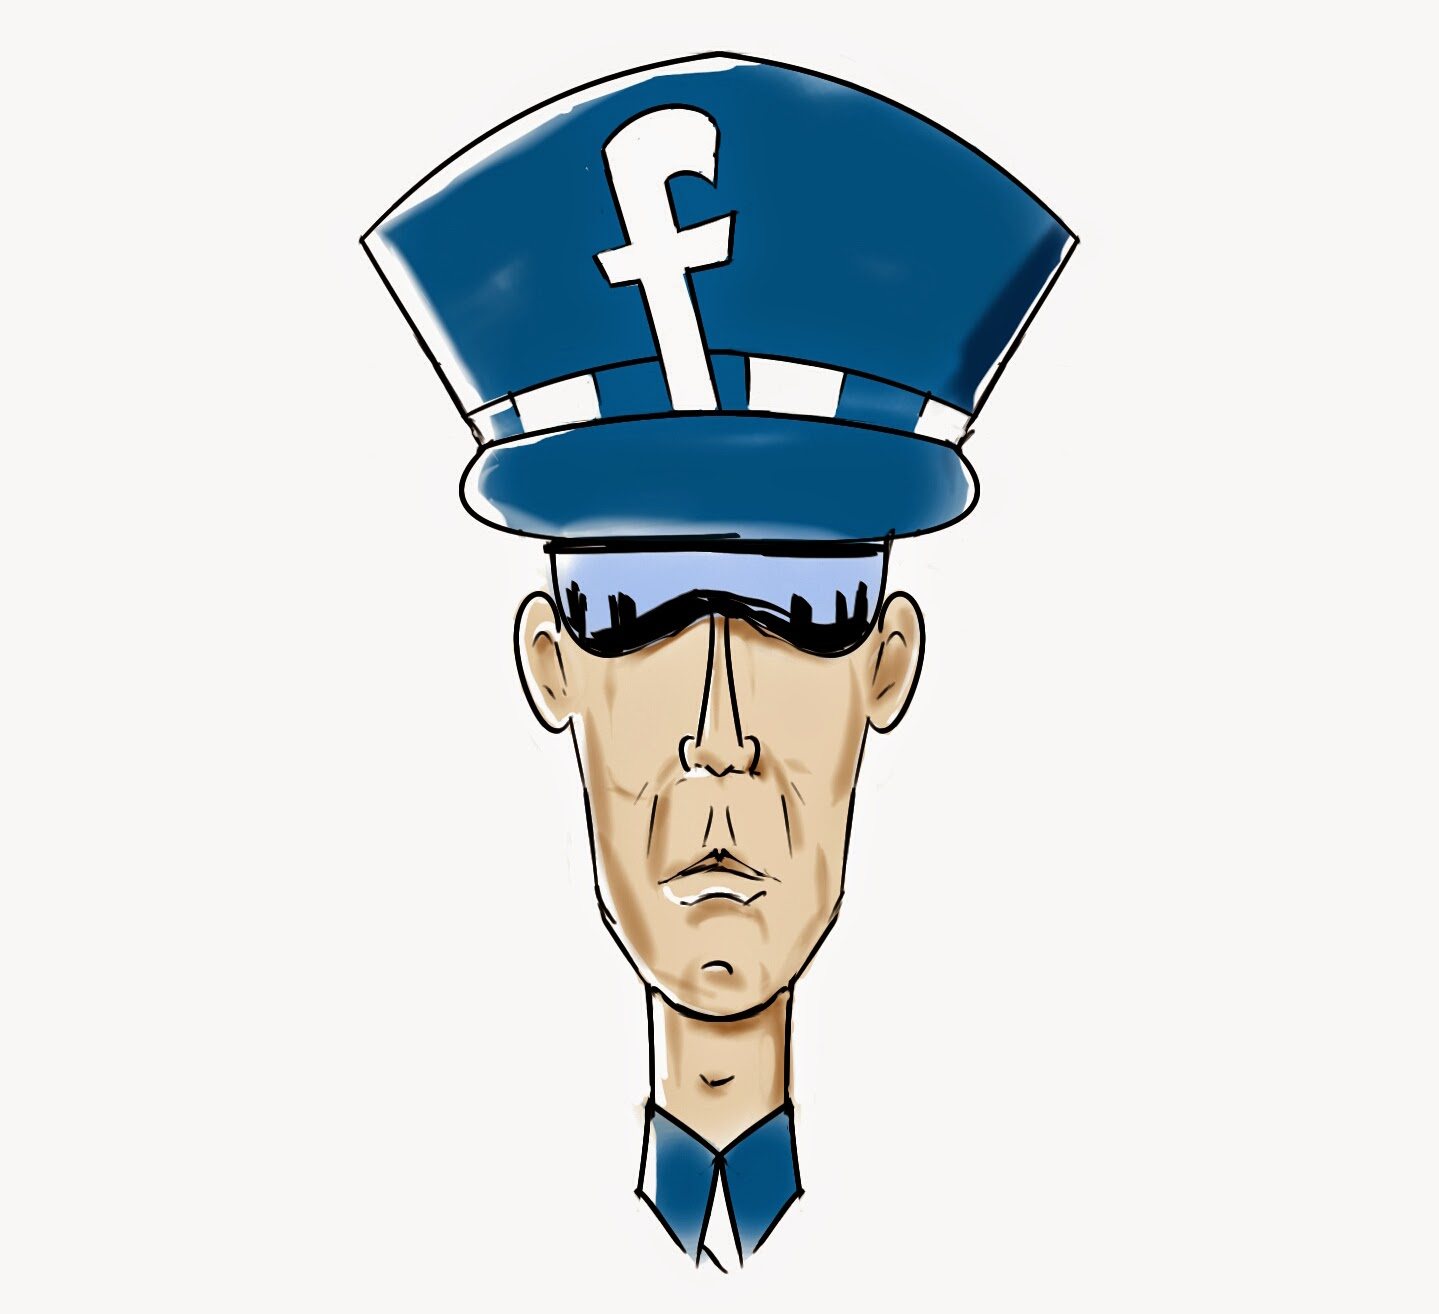 illustration of a police officer with an 'f' on his hat